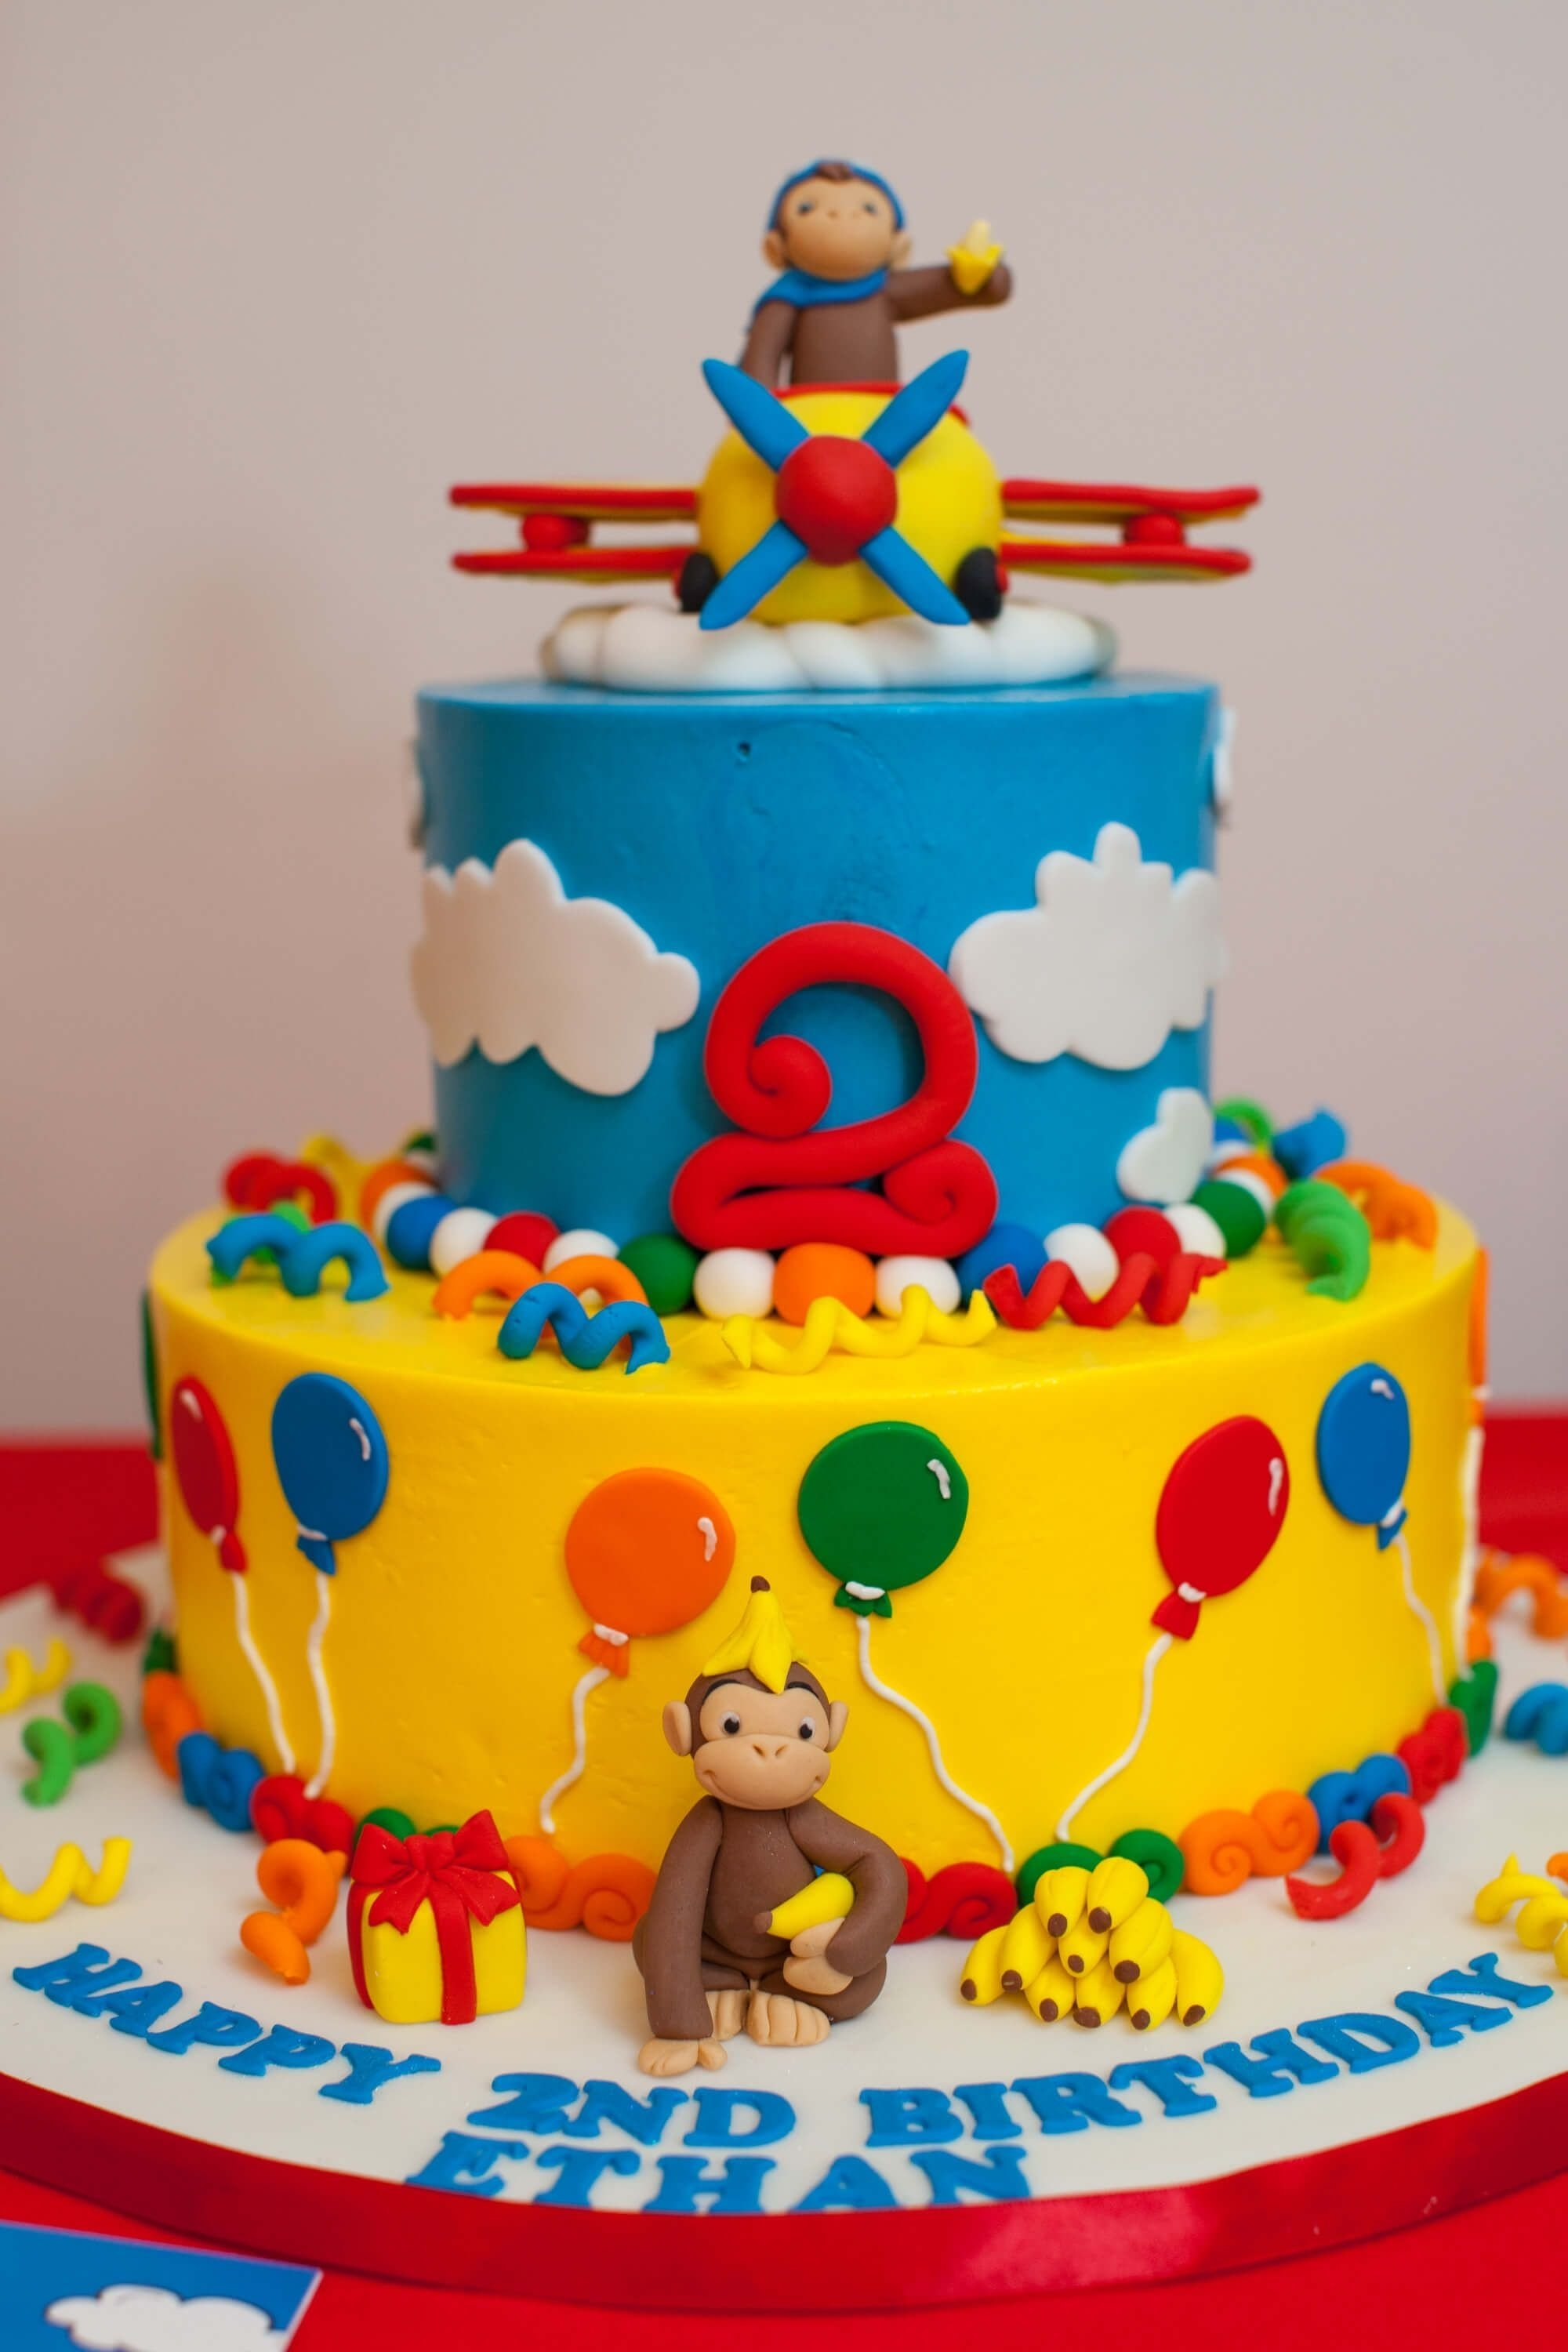 10 Famous Curious George Birthday Cake Ideas dazzling design curious george cake cakecentral com cakes 2021